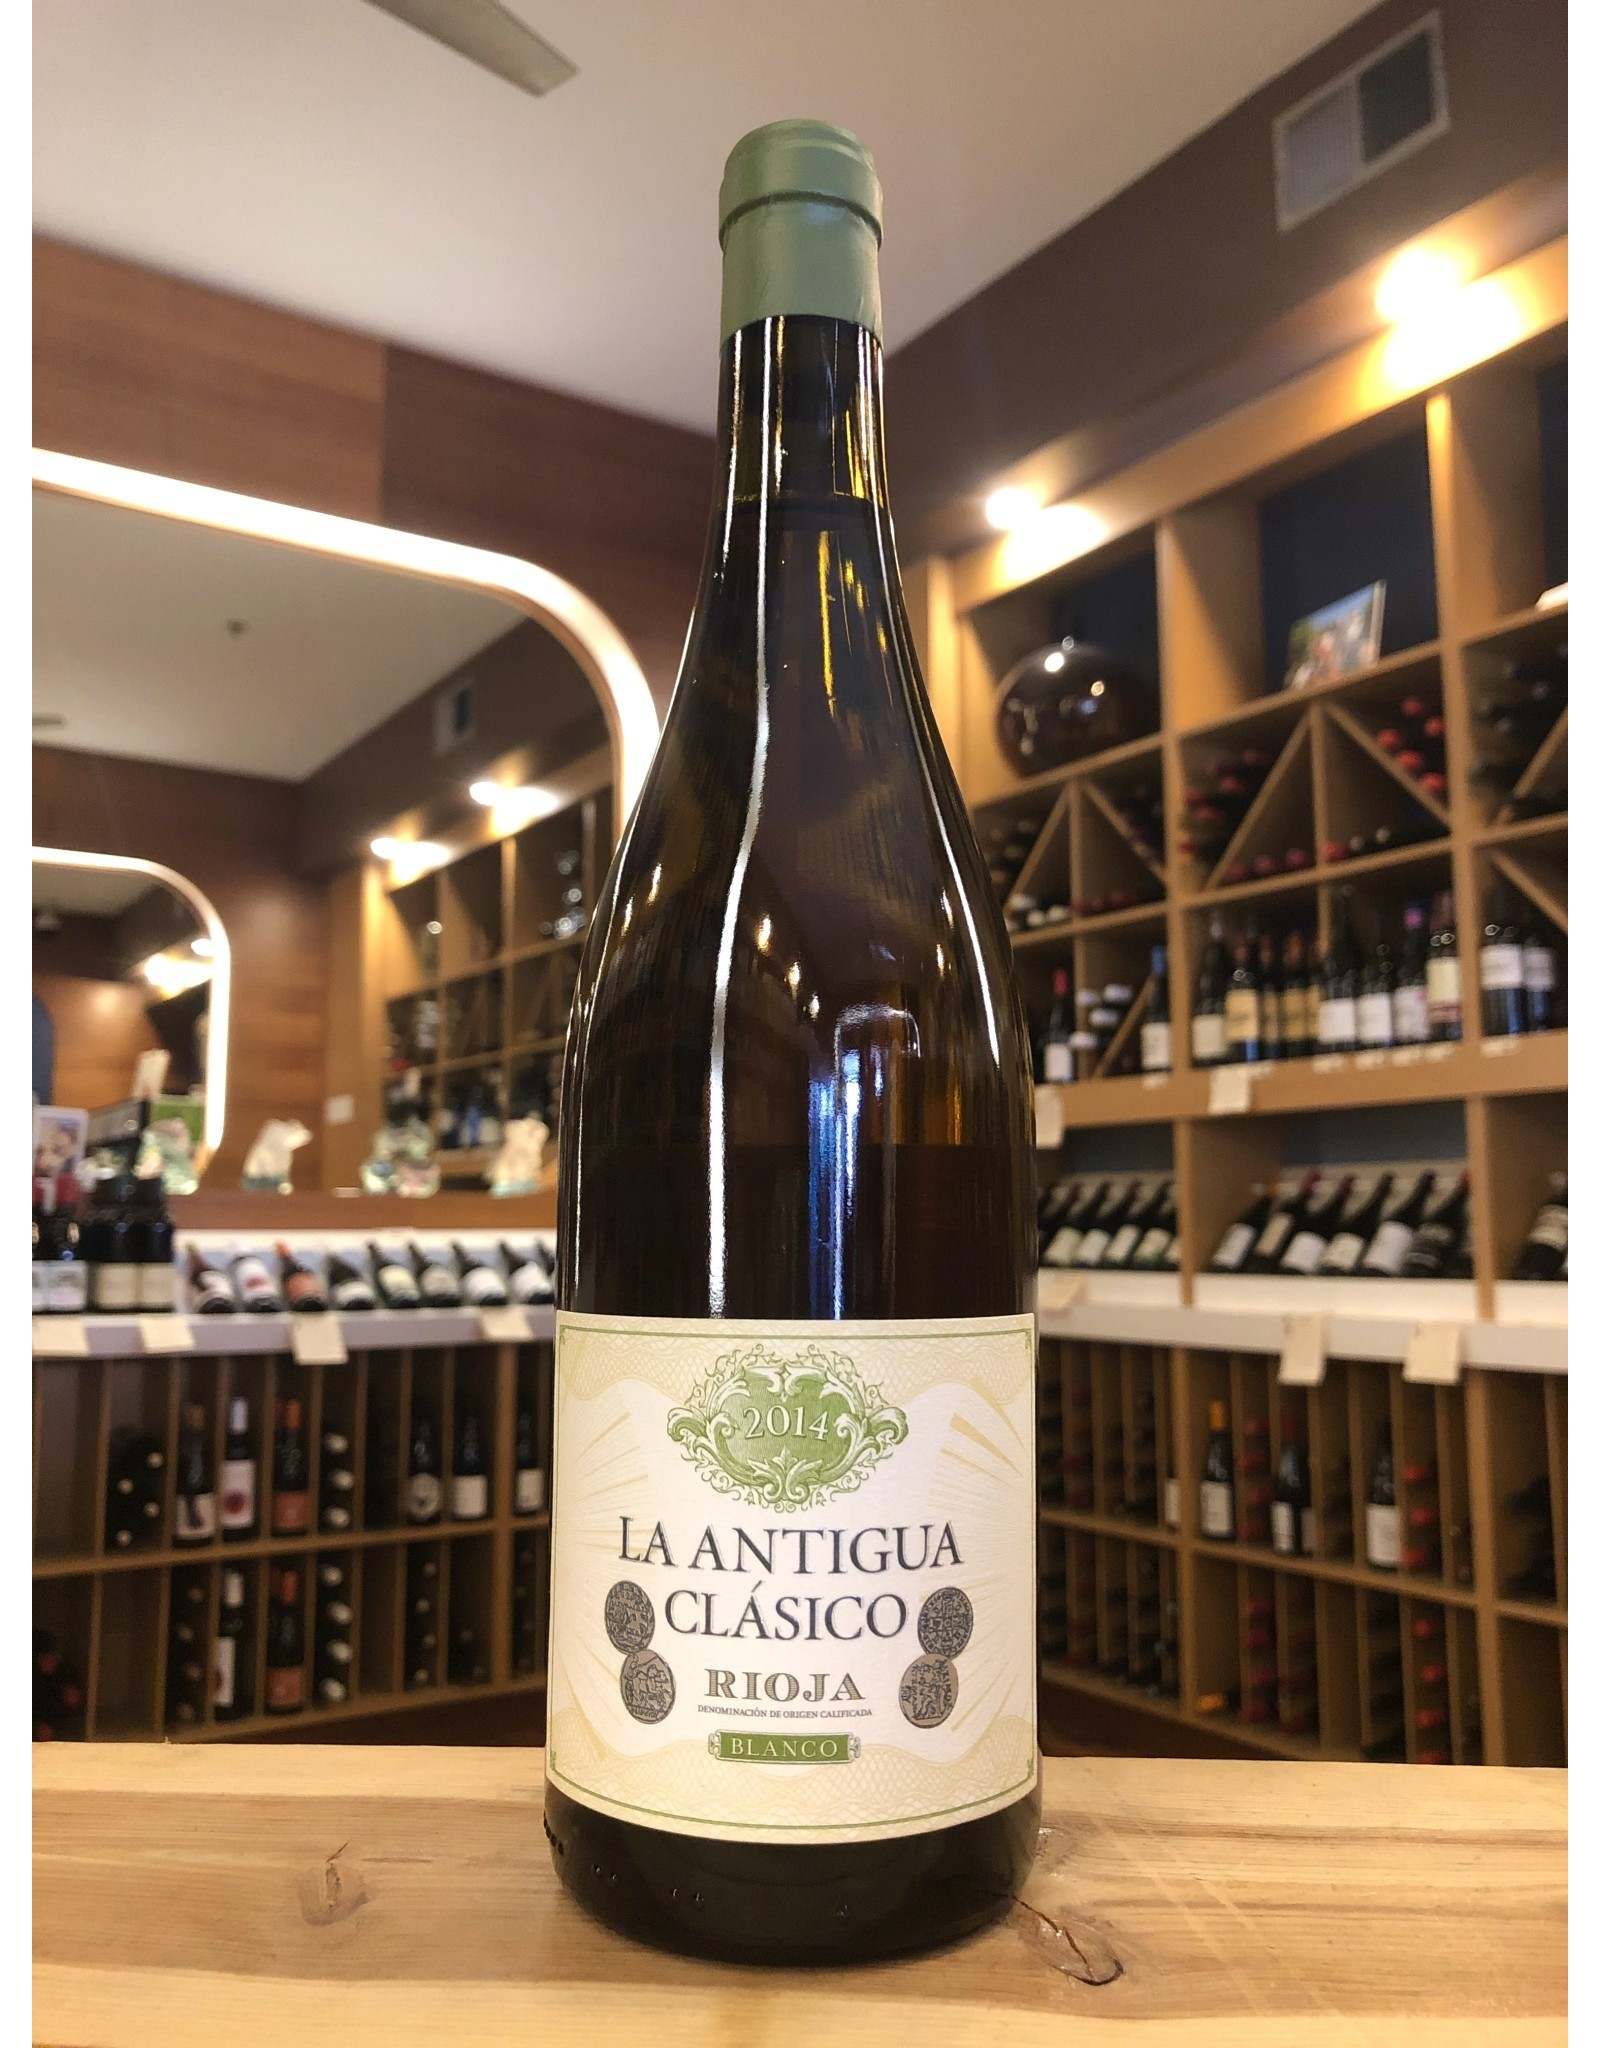 La Antigua Clasico Rioja Blanco - 750 ML